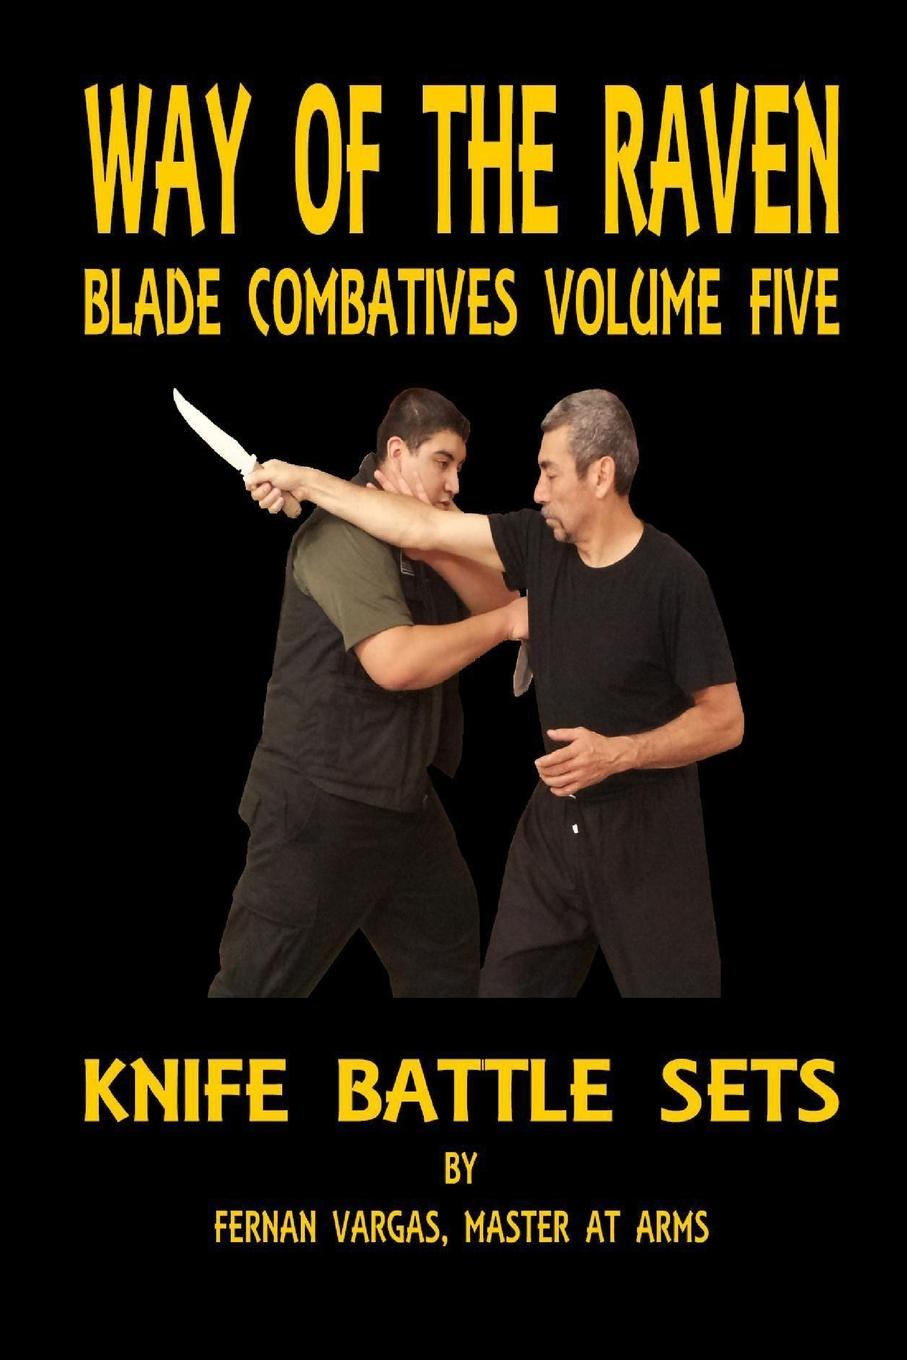 Fernan Vargas Way of the Raven Blade Combatives Volume Five. Knife Battle Sets fernan vargas joseph truncale surviving the active killer